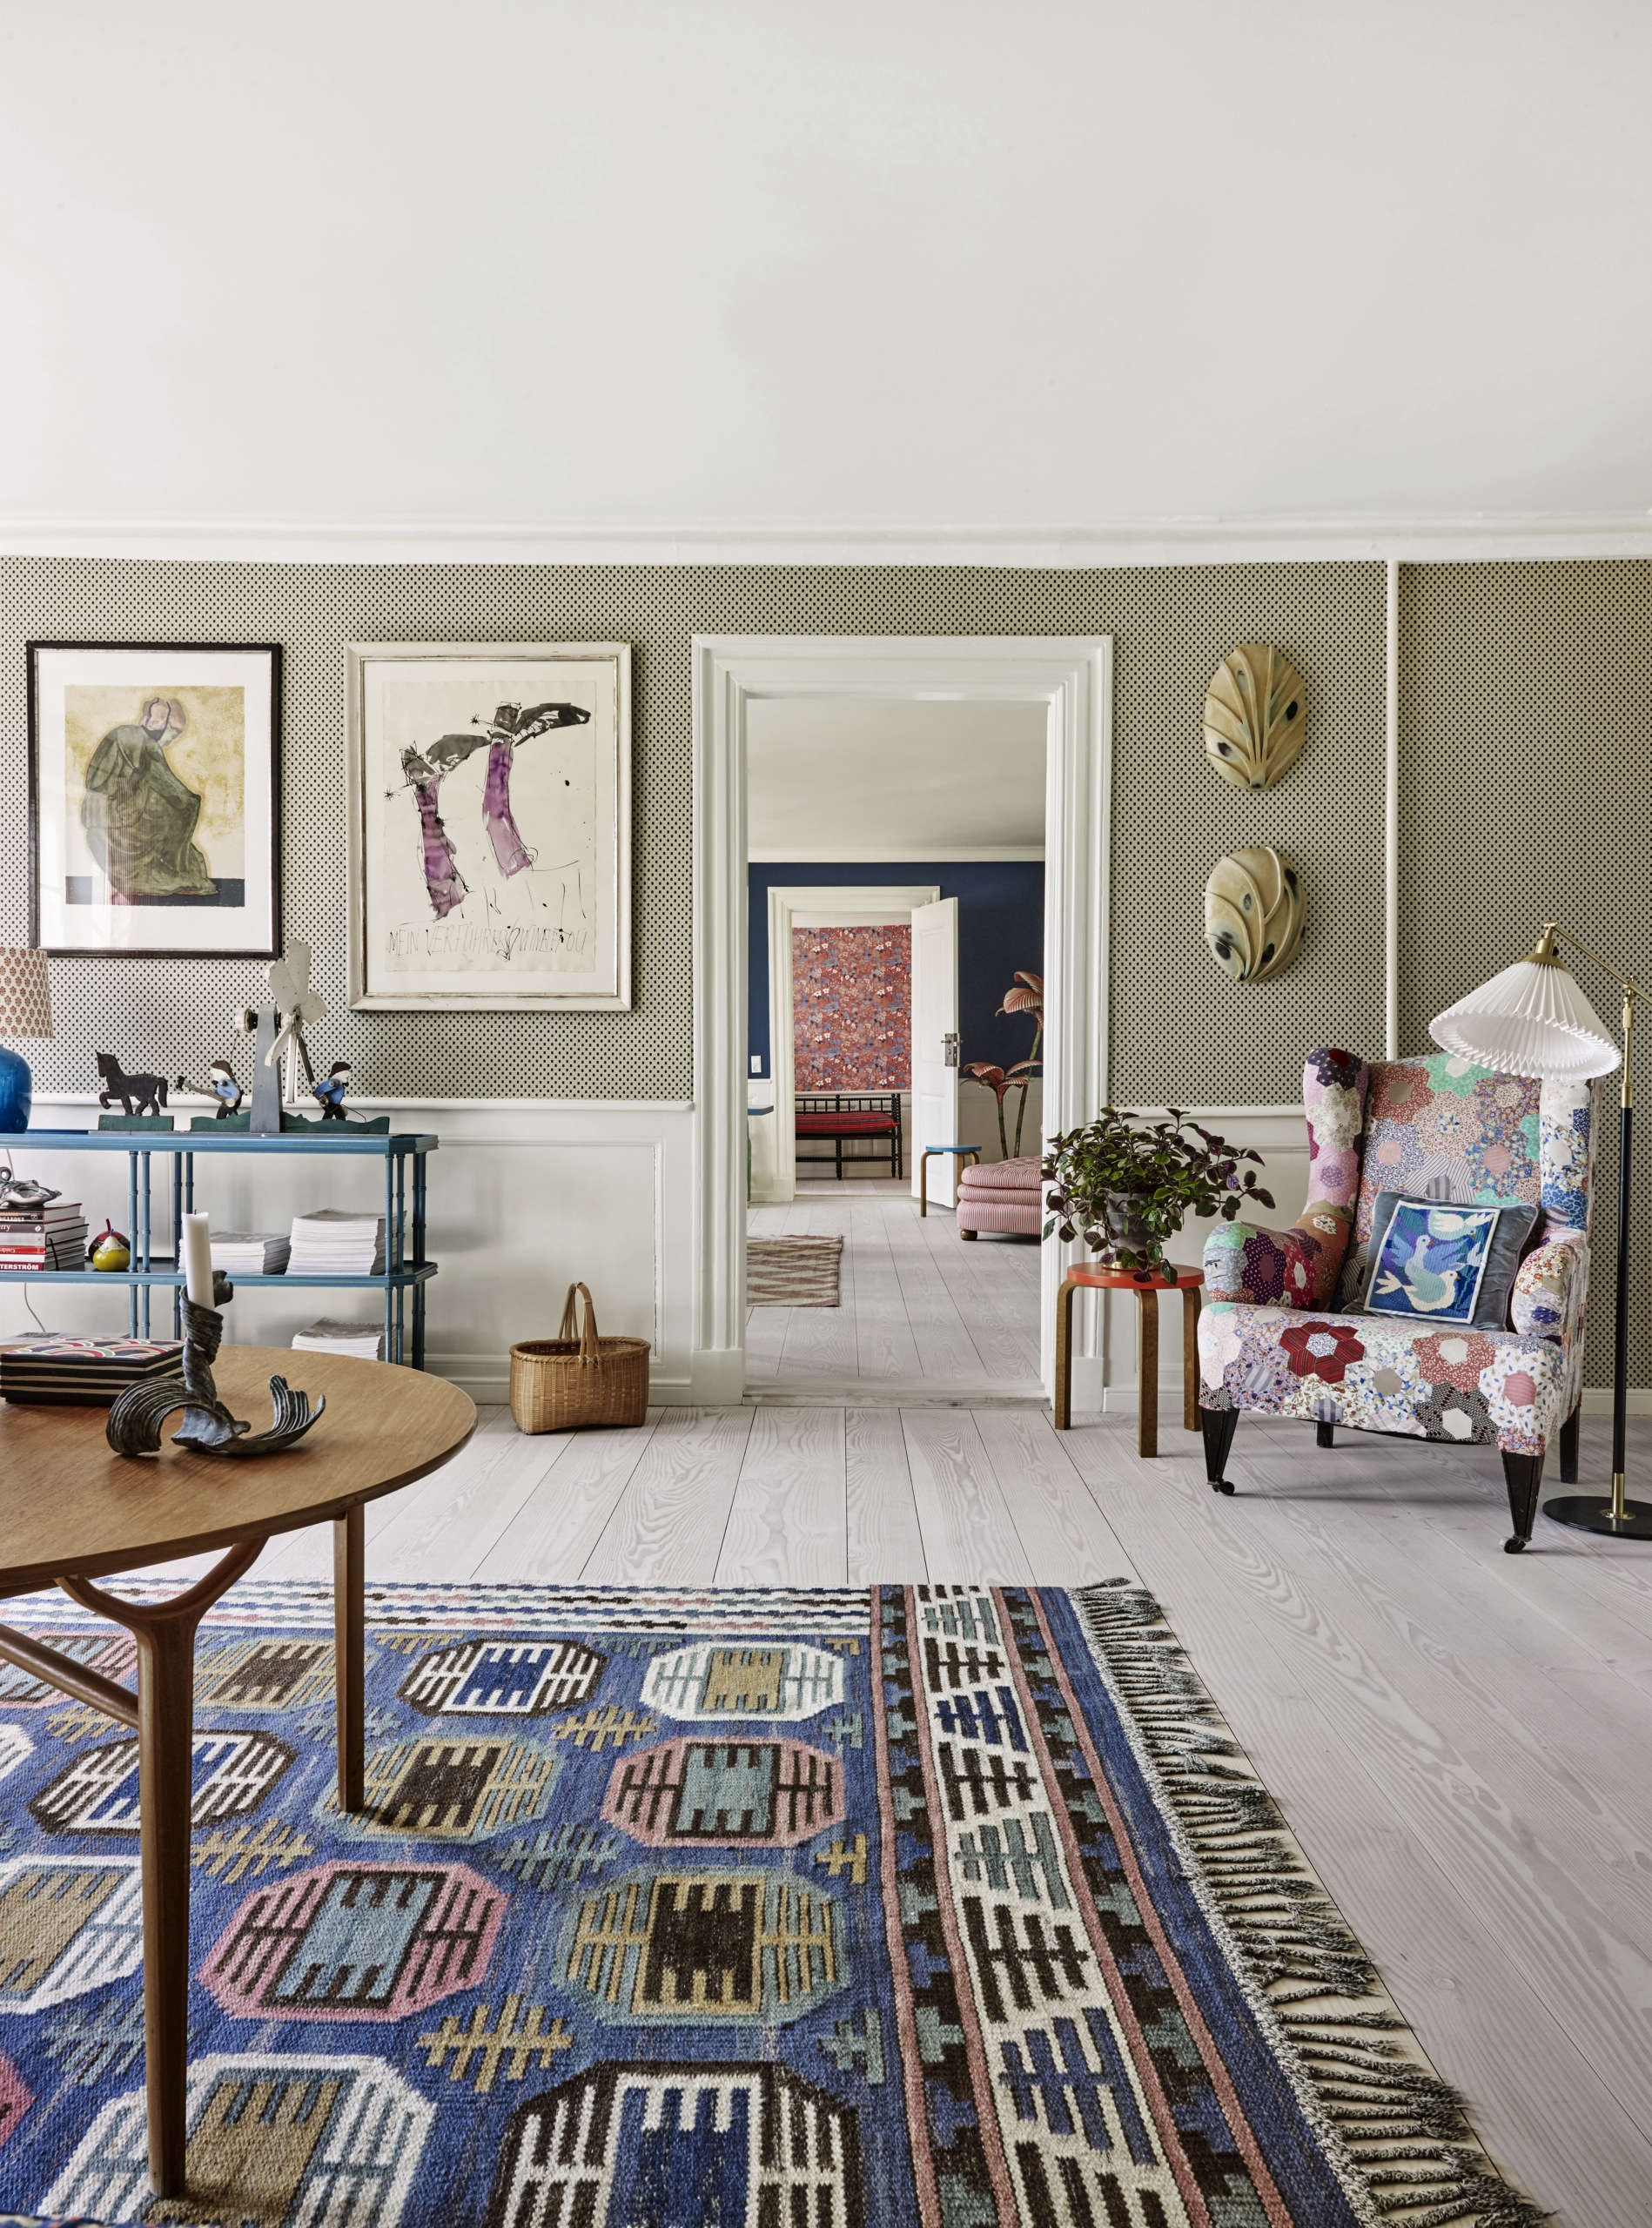 In the living room, a wing chair is upholstered in a classic American hexagonal quilt pattern. (Tina also hangs quilts as art; see her collection of antique quilts here.) The Flat Weave Rug is a 50s Swedish design by Märta Måås-Fjetterström.